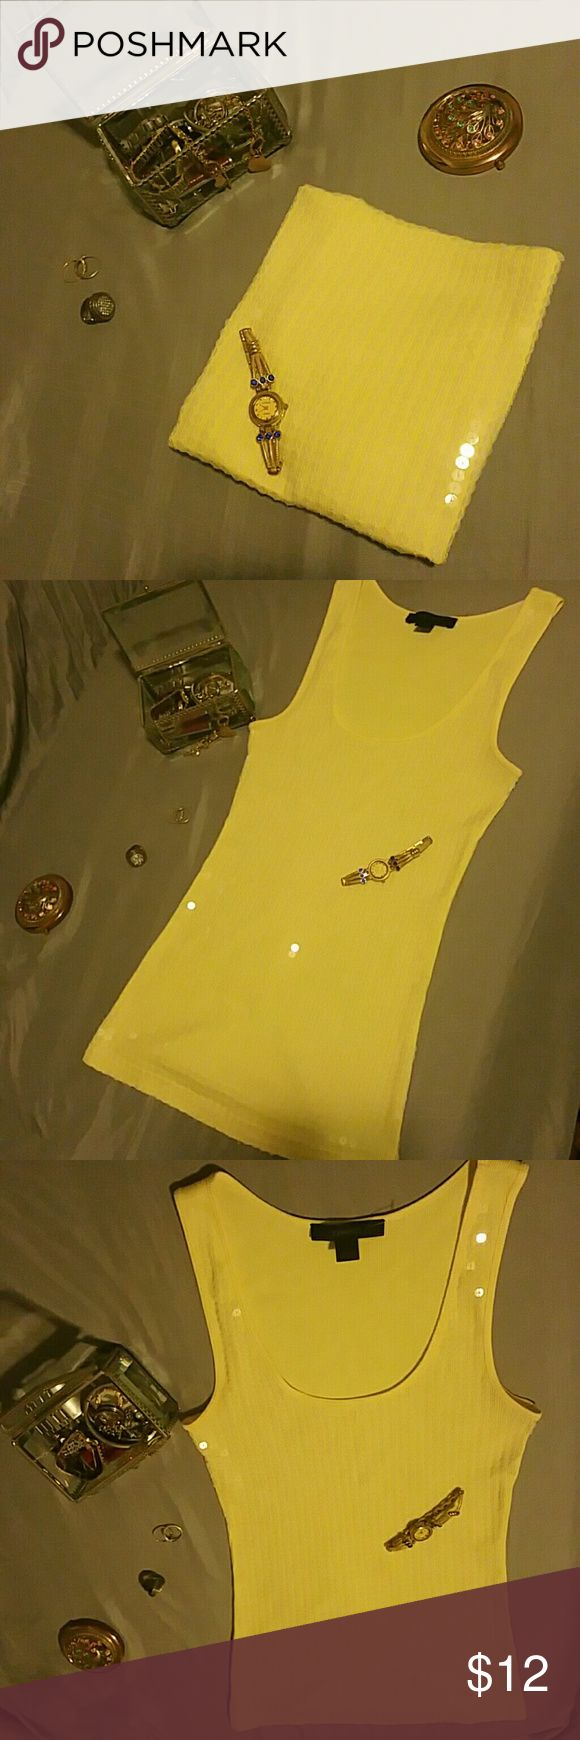 💥new💥 Express sequin tank top Bright yellow. Brand new. Express Tops Tank Tops